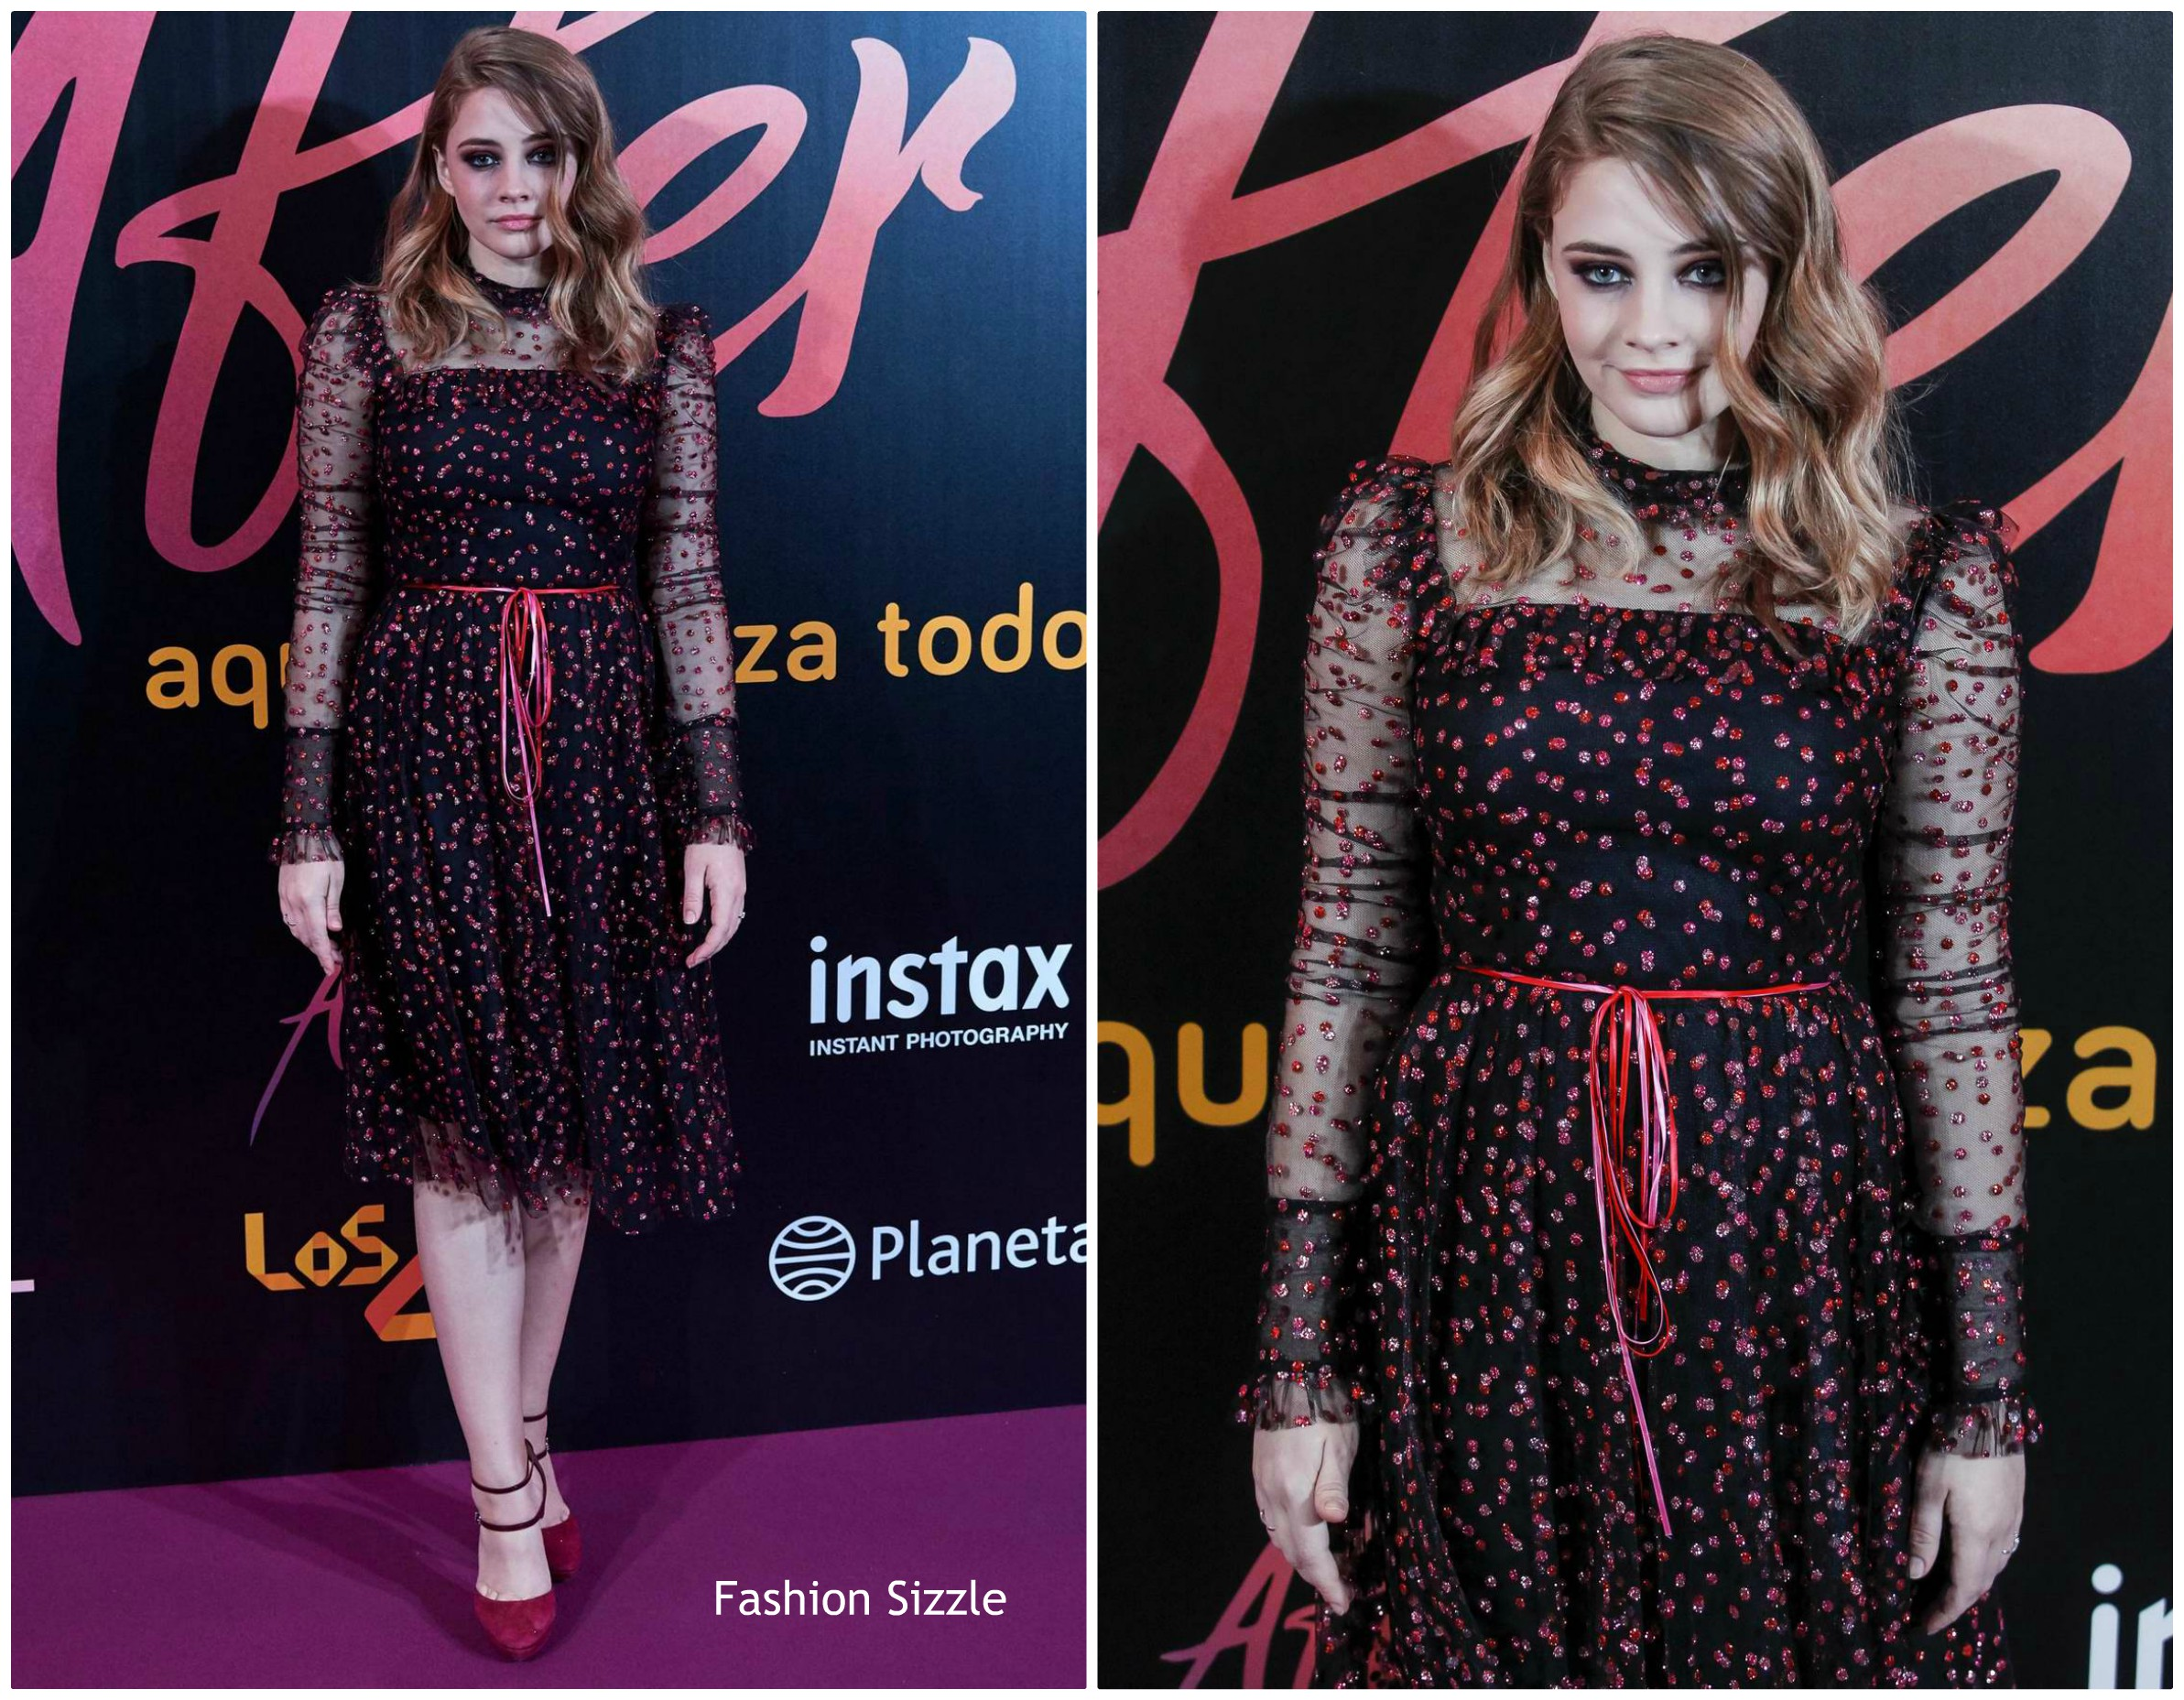 josephine-langford-in-monique-lhuillier-after-madrid-premiere